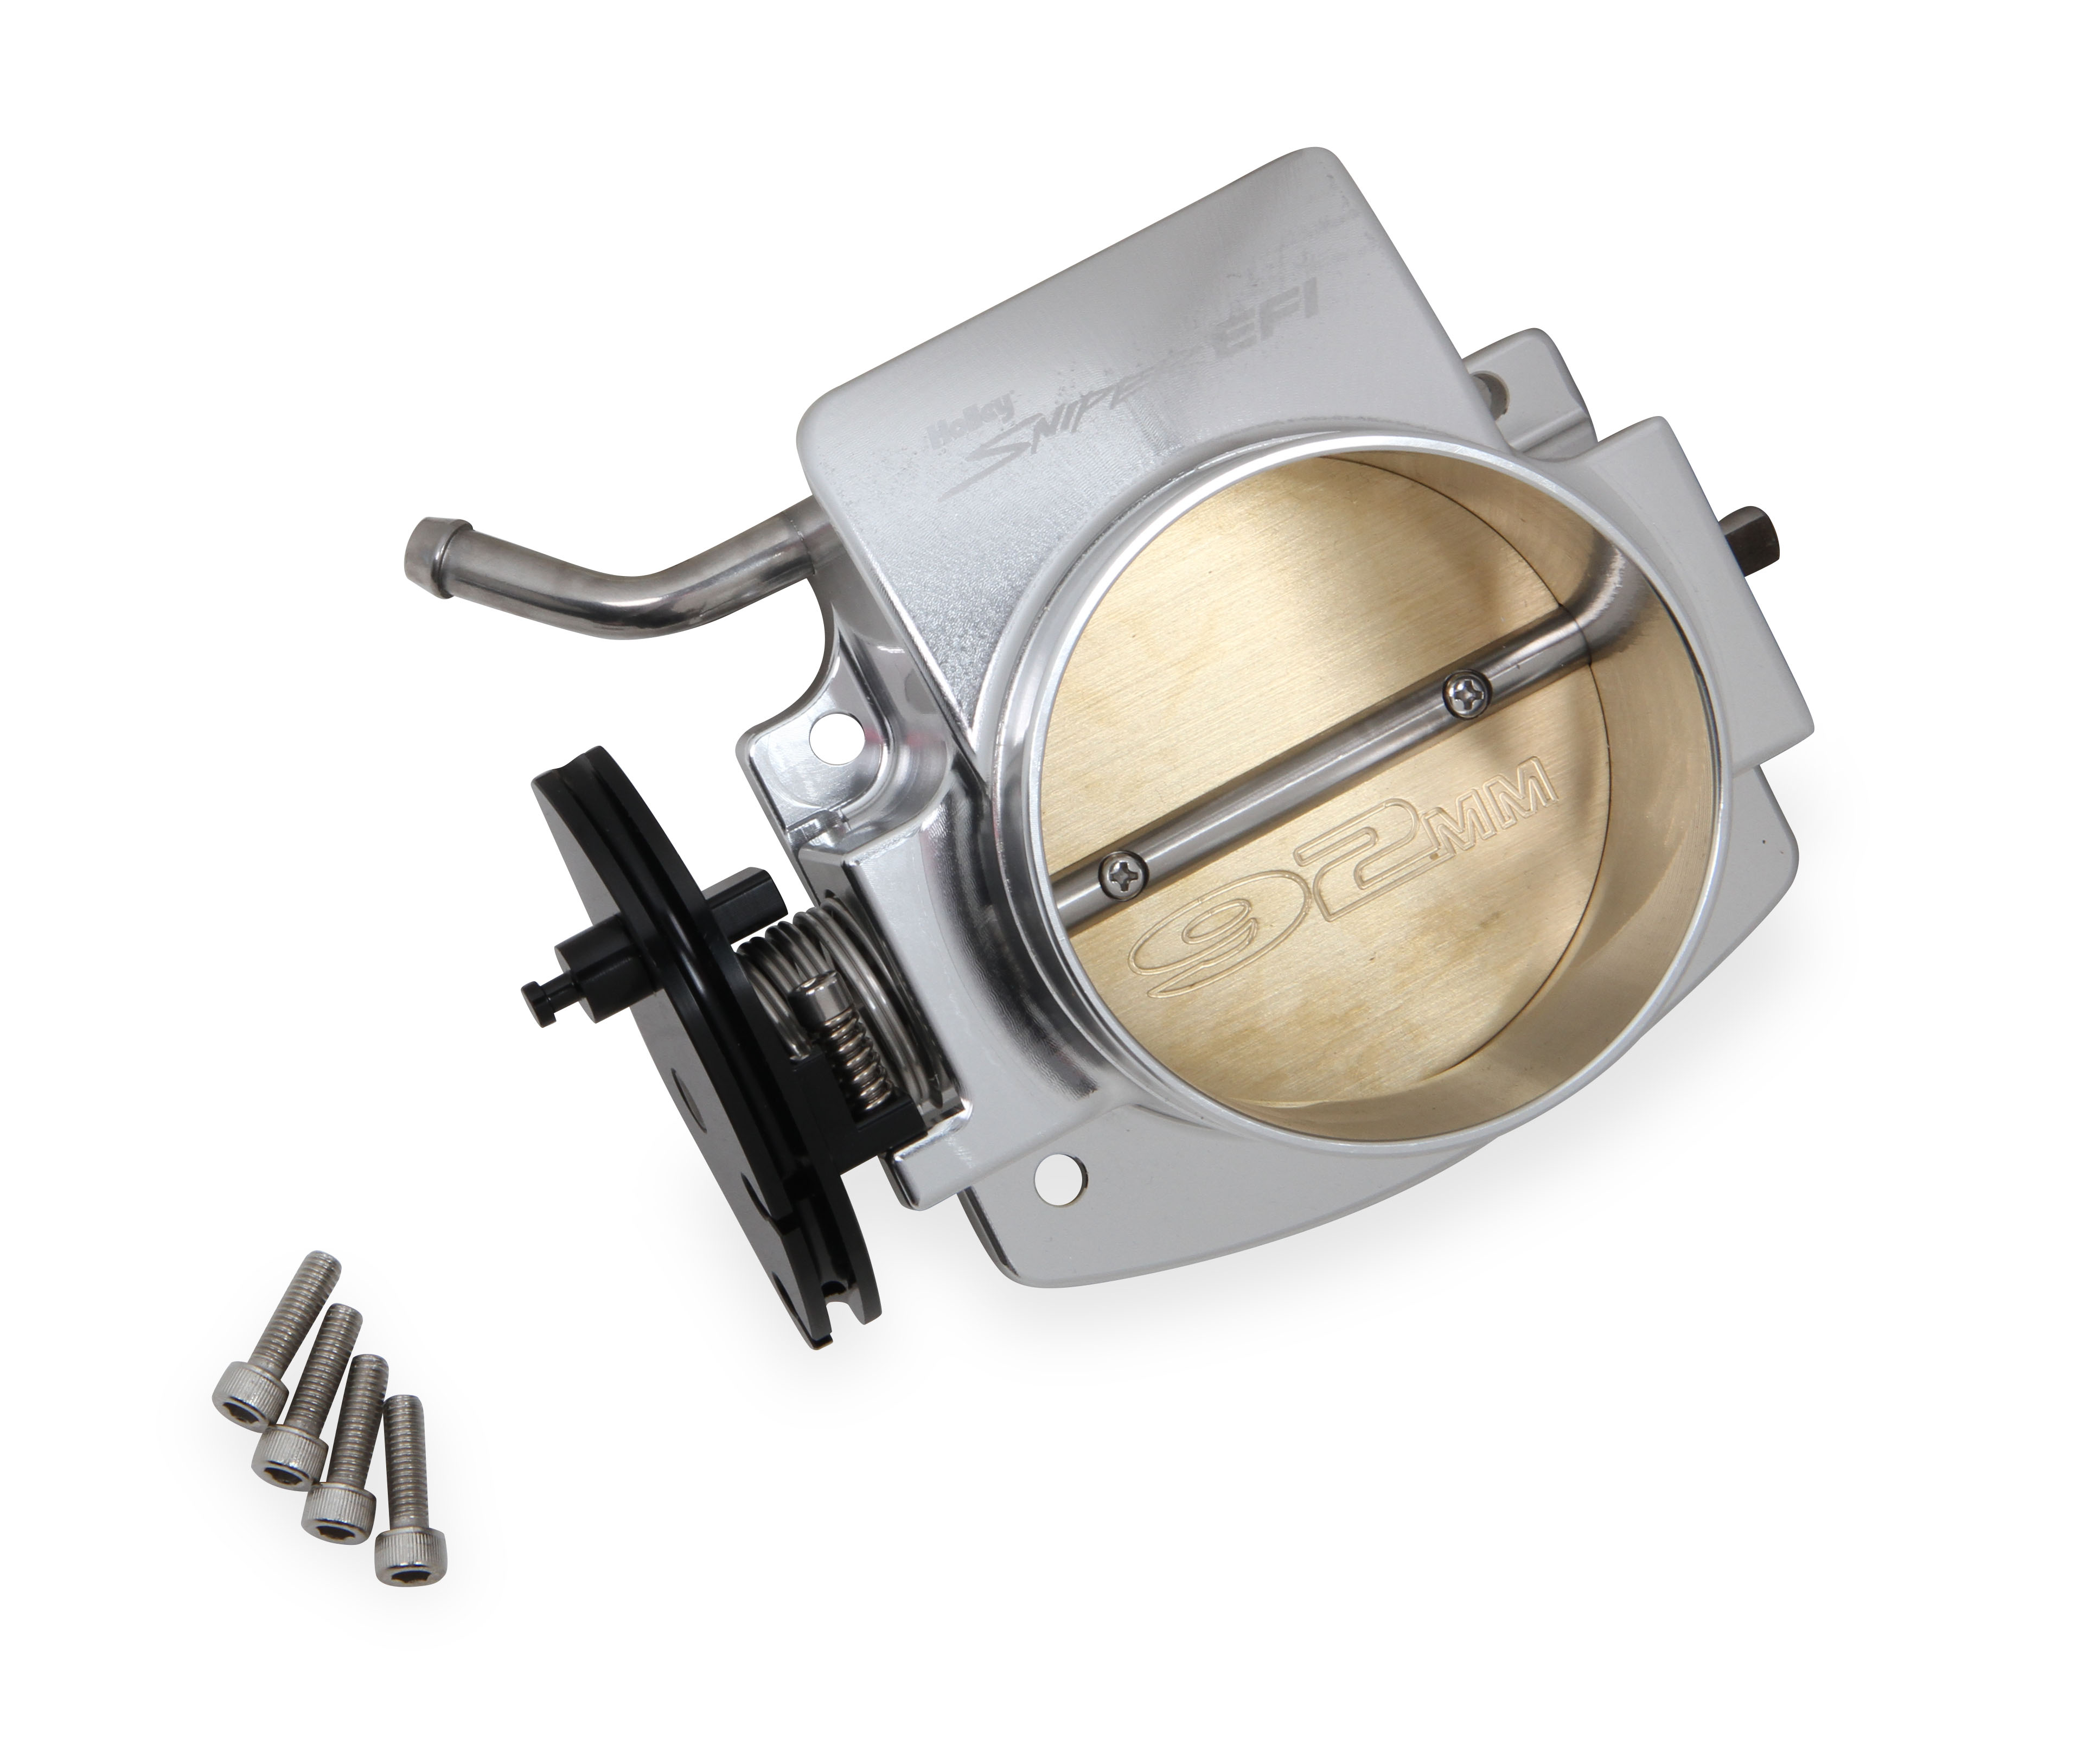 LS1 Holley 92mm Sniper EFI Throttle Body - Silver